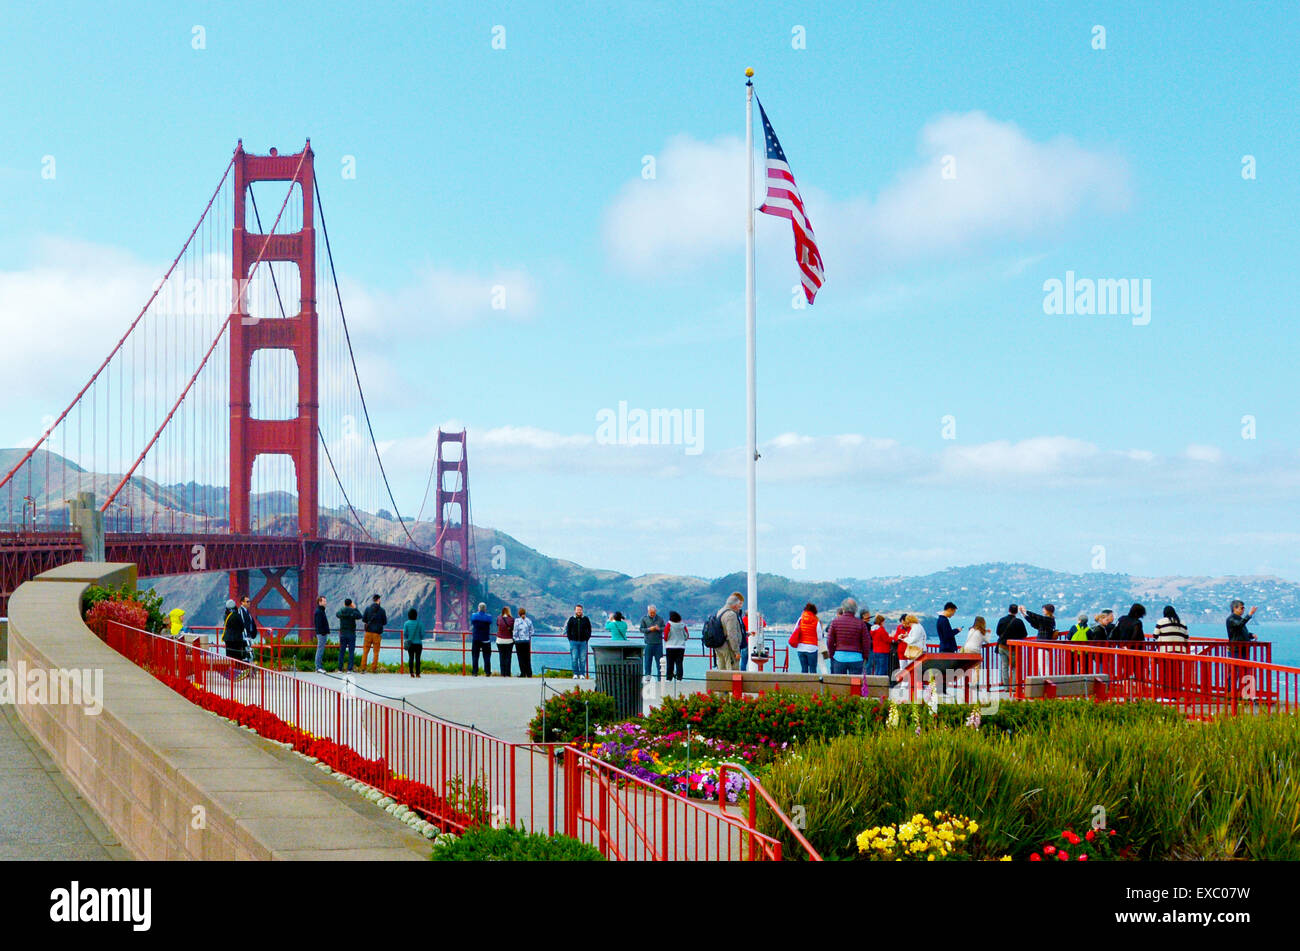 SAN FRANCISCO - MAY 19 2015: Visitors at Golden Gate Bridge. Frommers travel guide considers Golden Gate Bridge - Stock Image